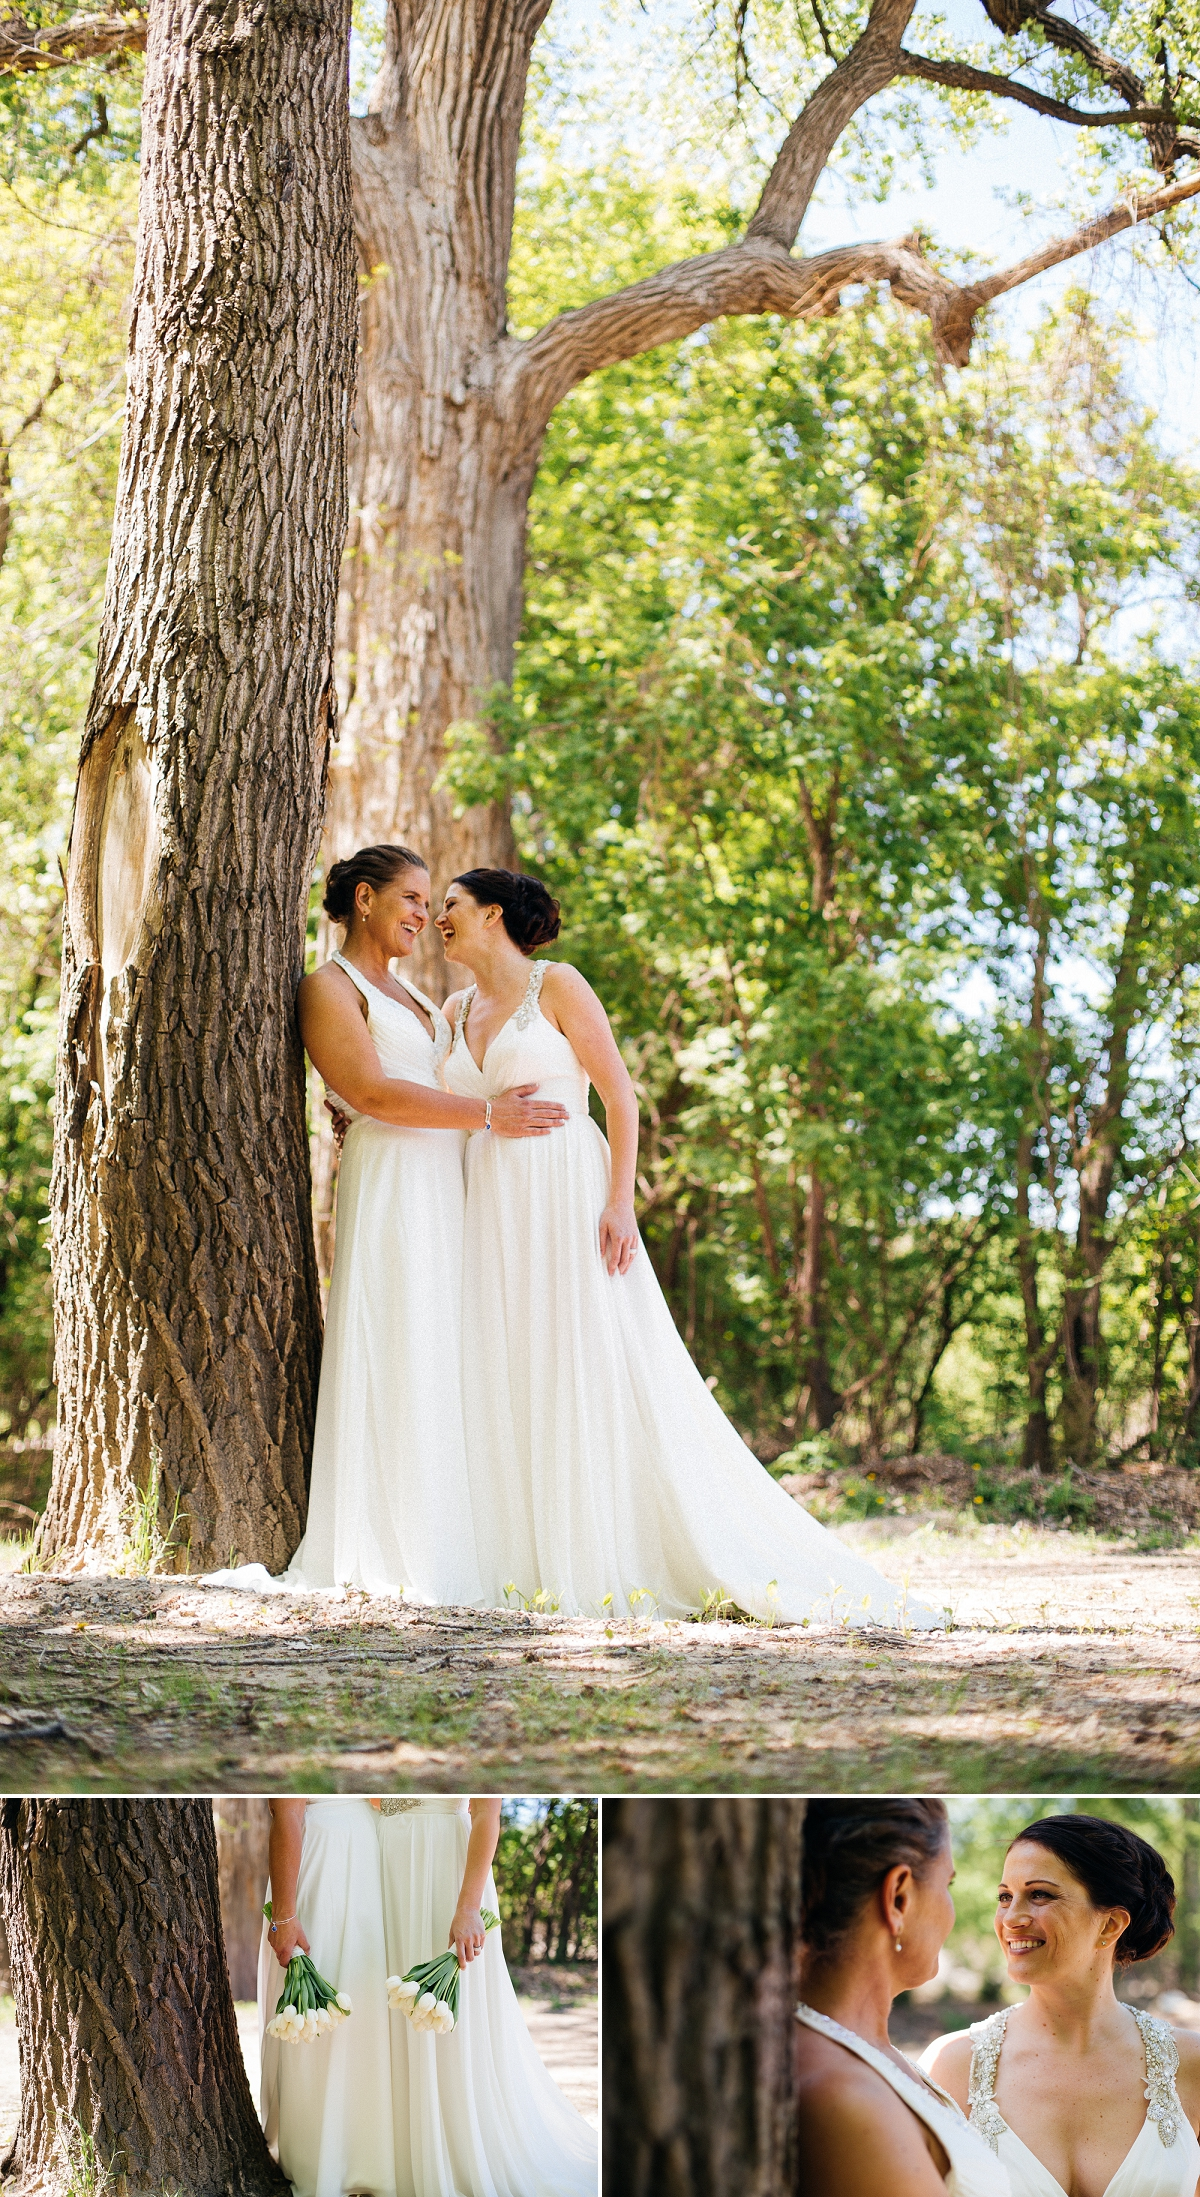 Beth and Gina Shakopee Wedding Photography 8